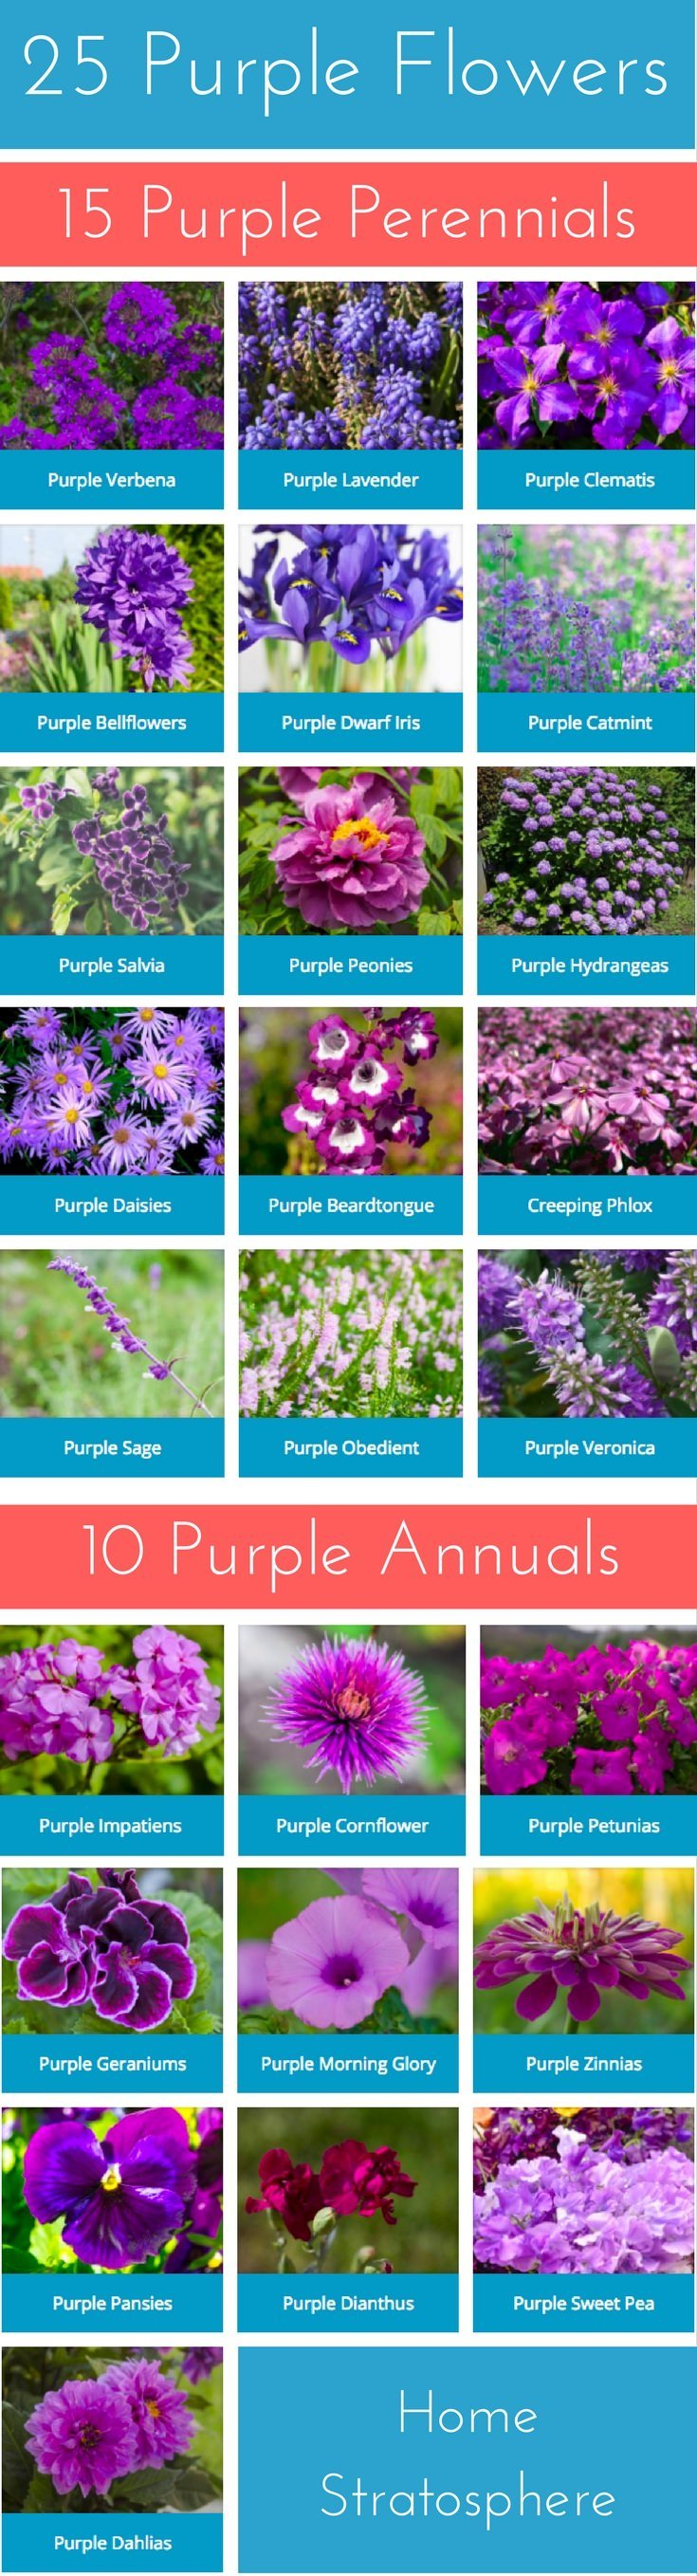 25 purple flower ideas for your garden pots and planters pin friendly flower chart mightylinksfo